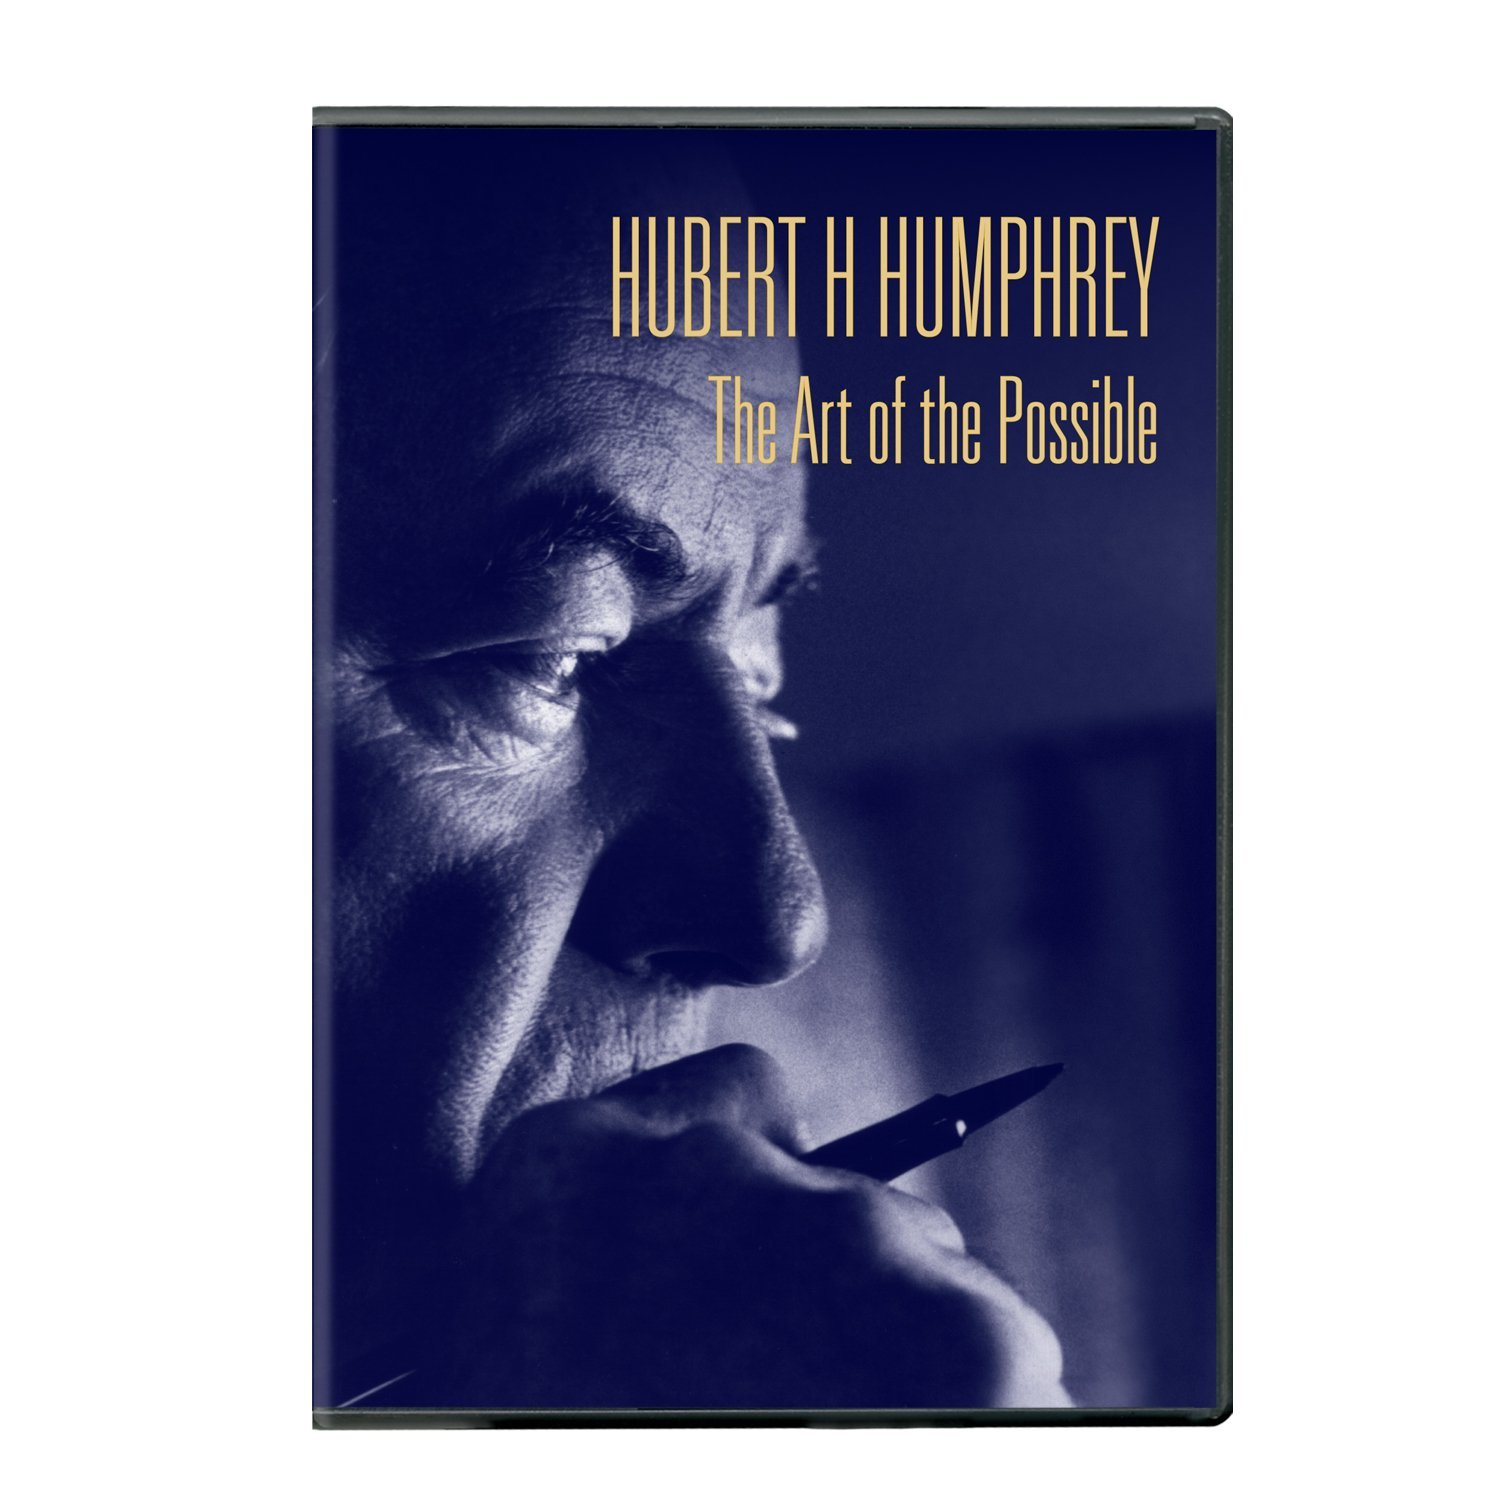 Ron And We Knew We Would Love The Glen Gould Film; What We Didn't Expect  Was How Moved We Were By The Humphrey Biography Some Of The Images From  The